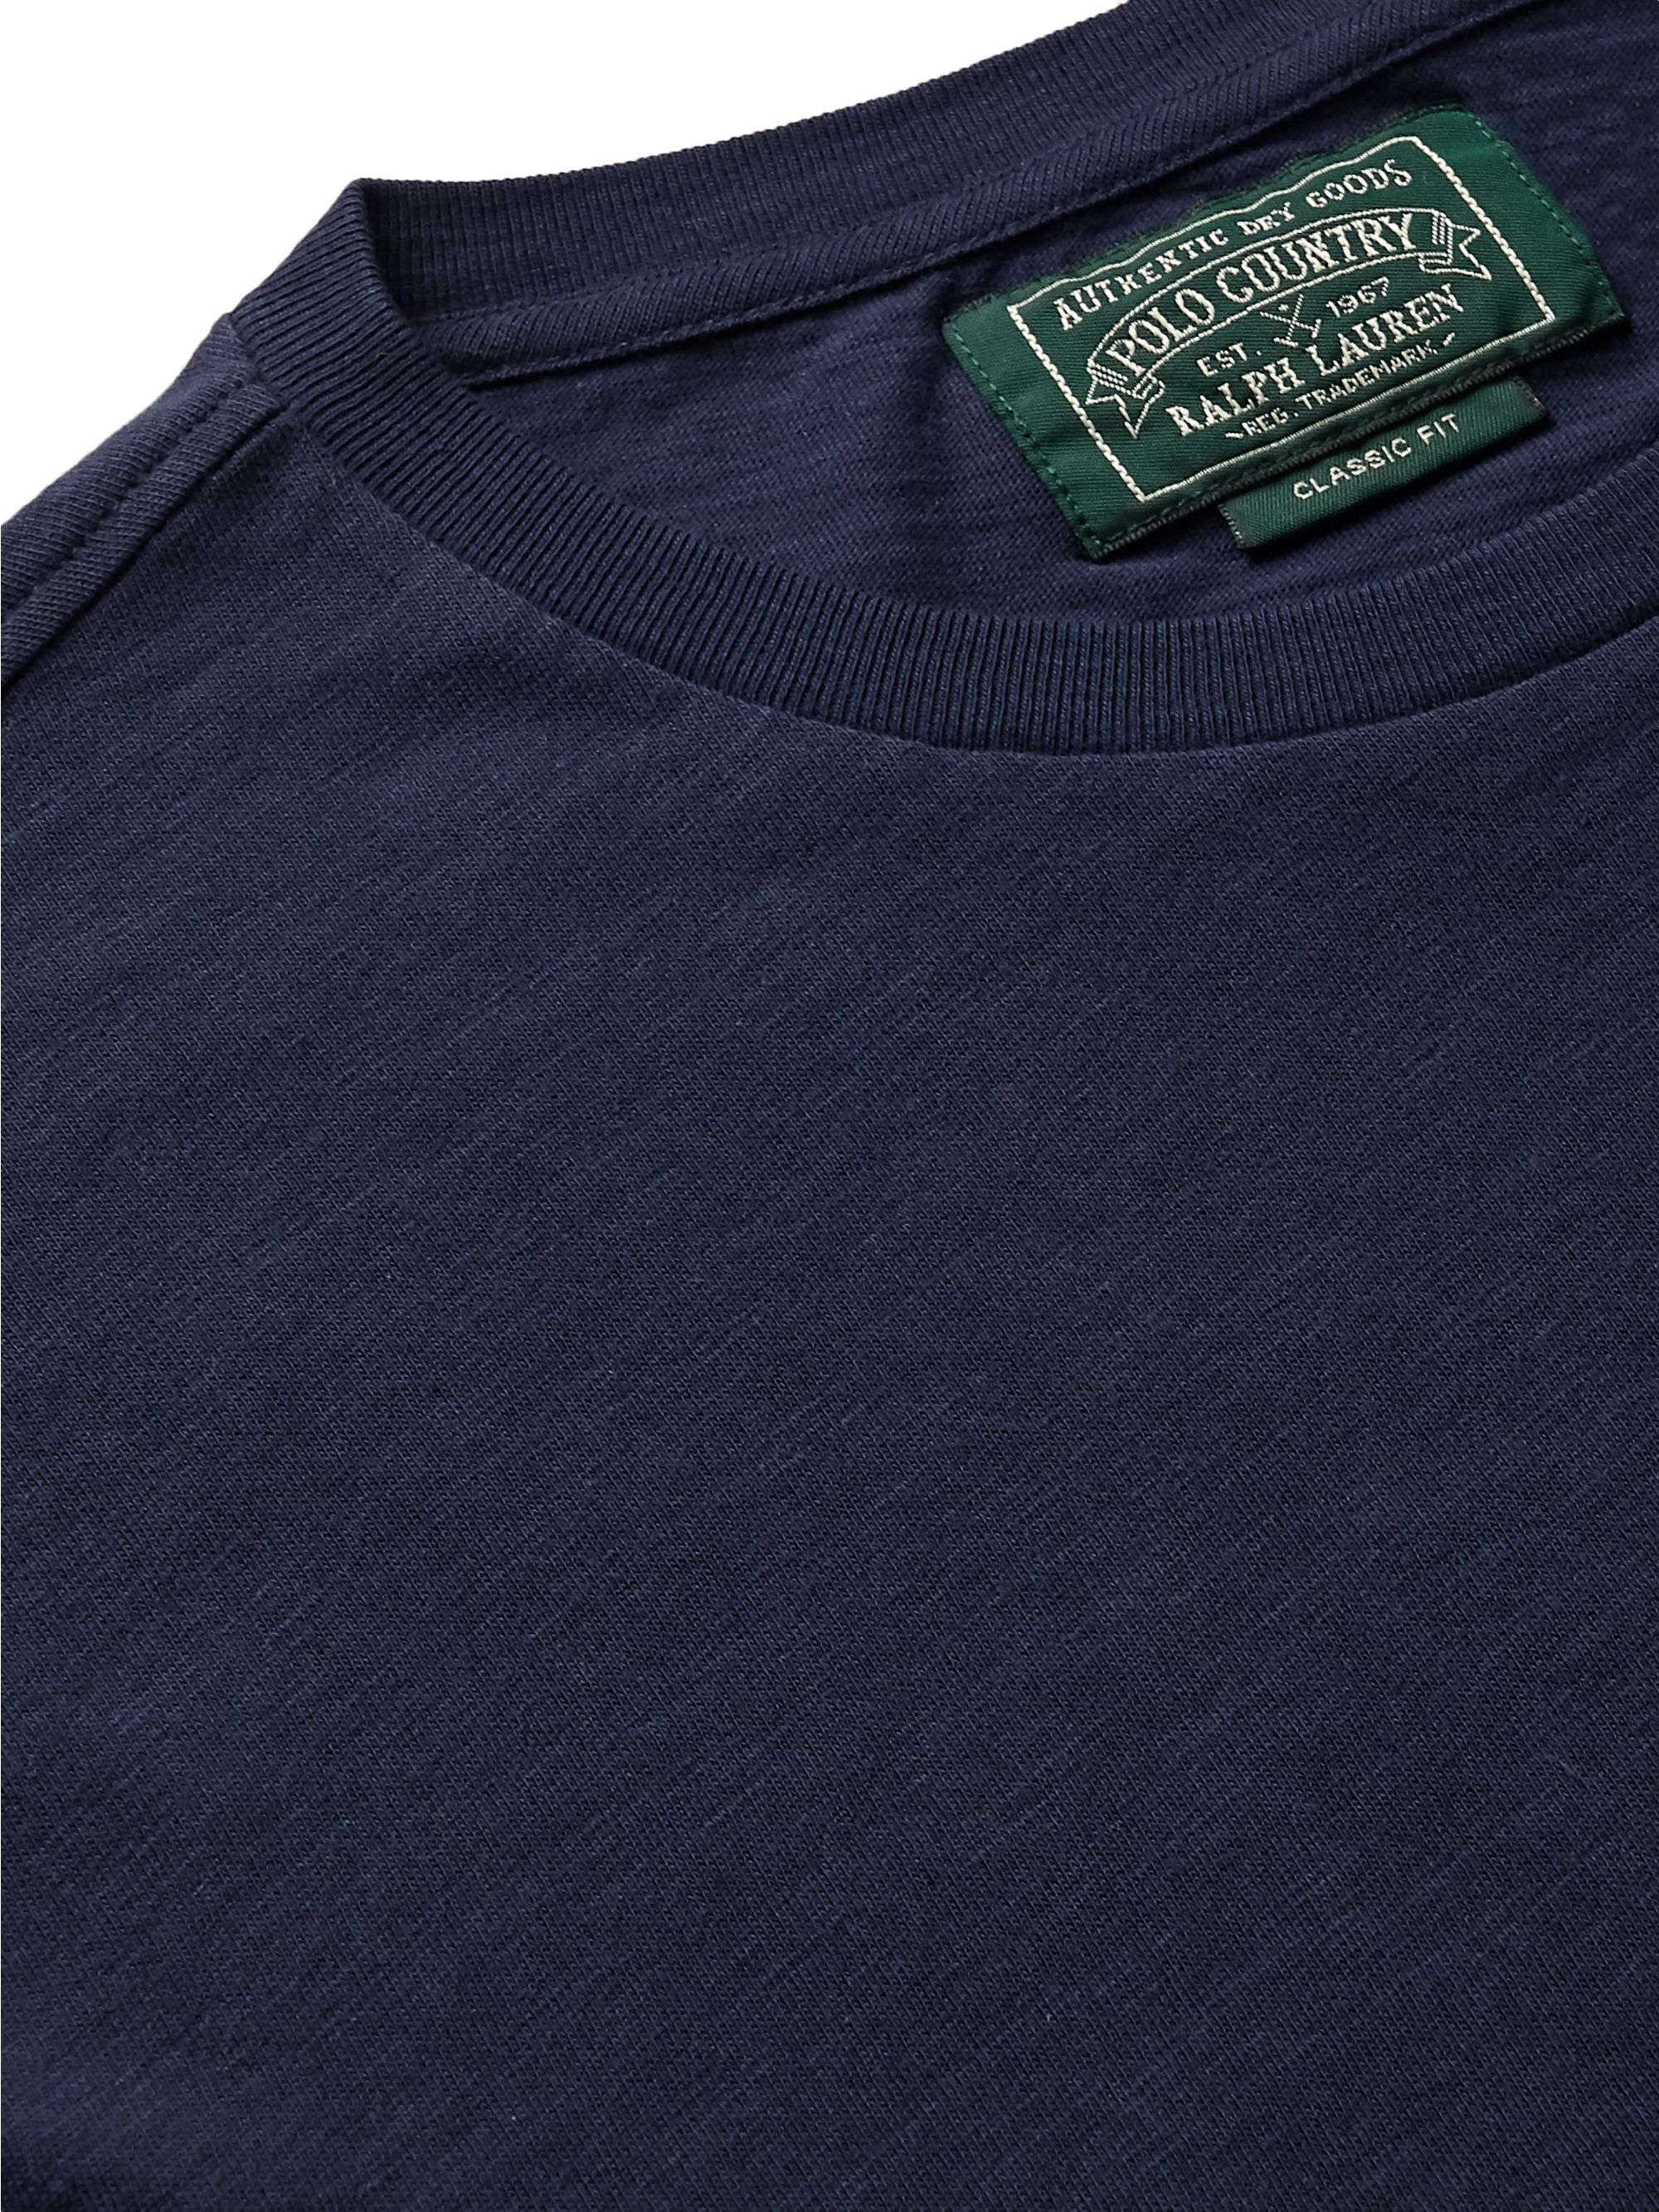 Polo Ralph Lauren Sportsman Logo-Appliquéd Printed Cotton-Jersey T-Shirt